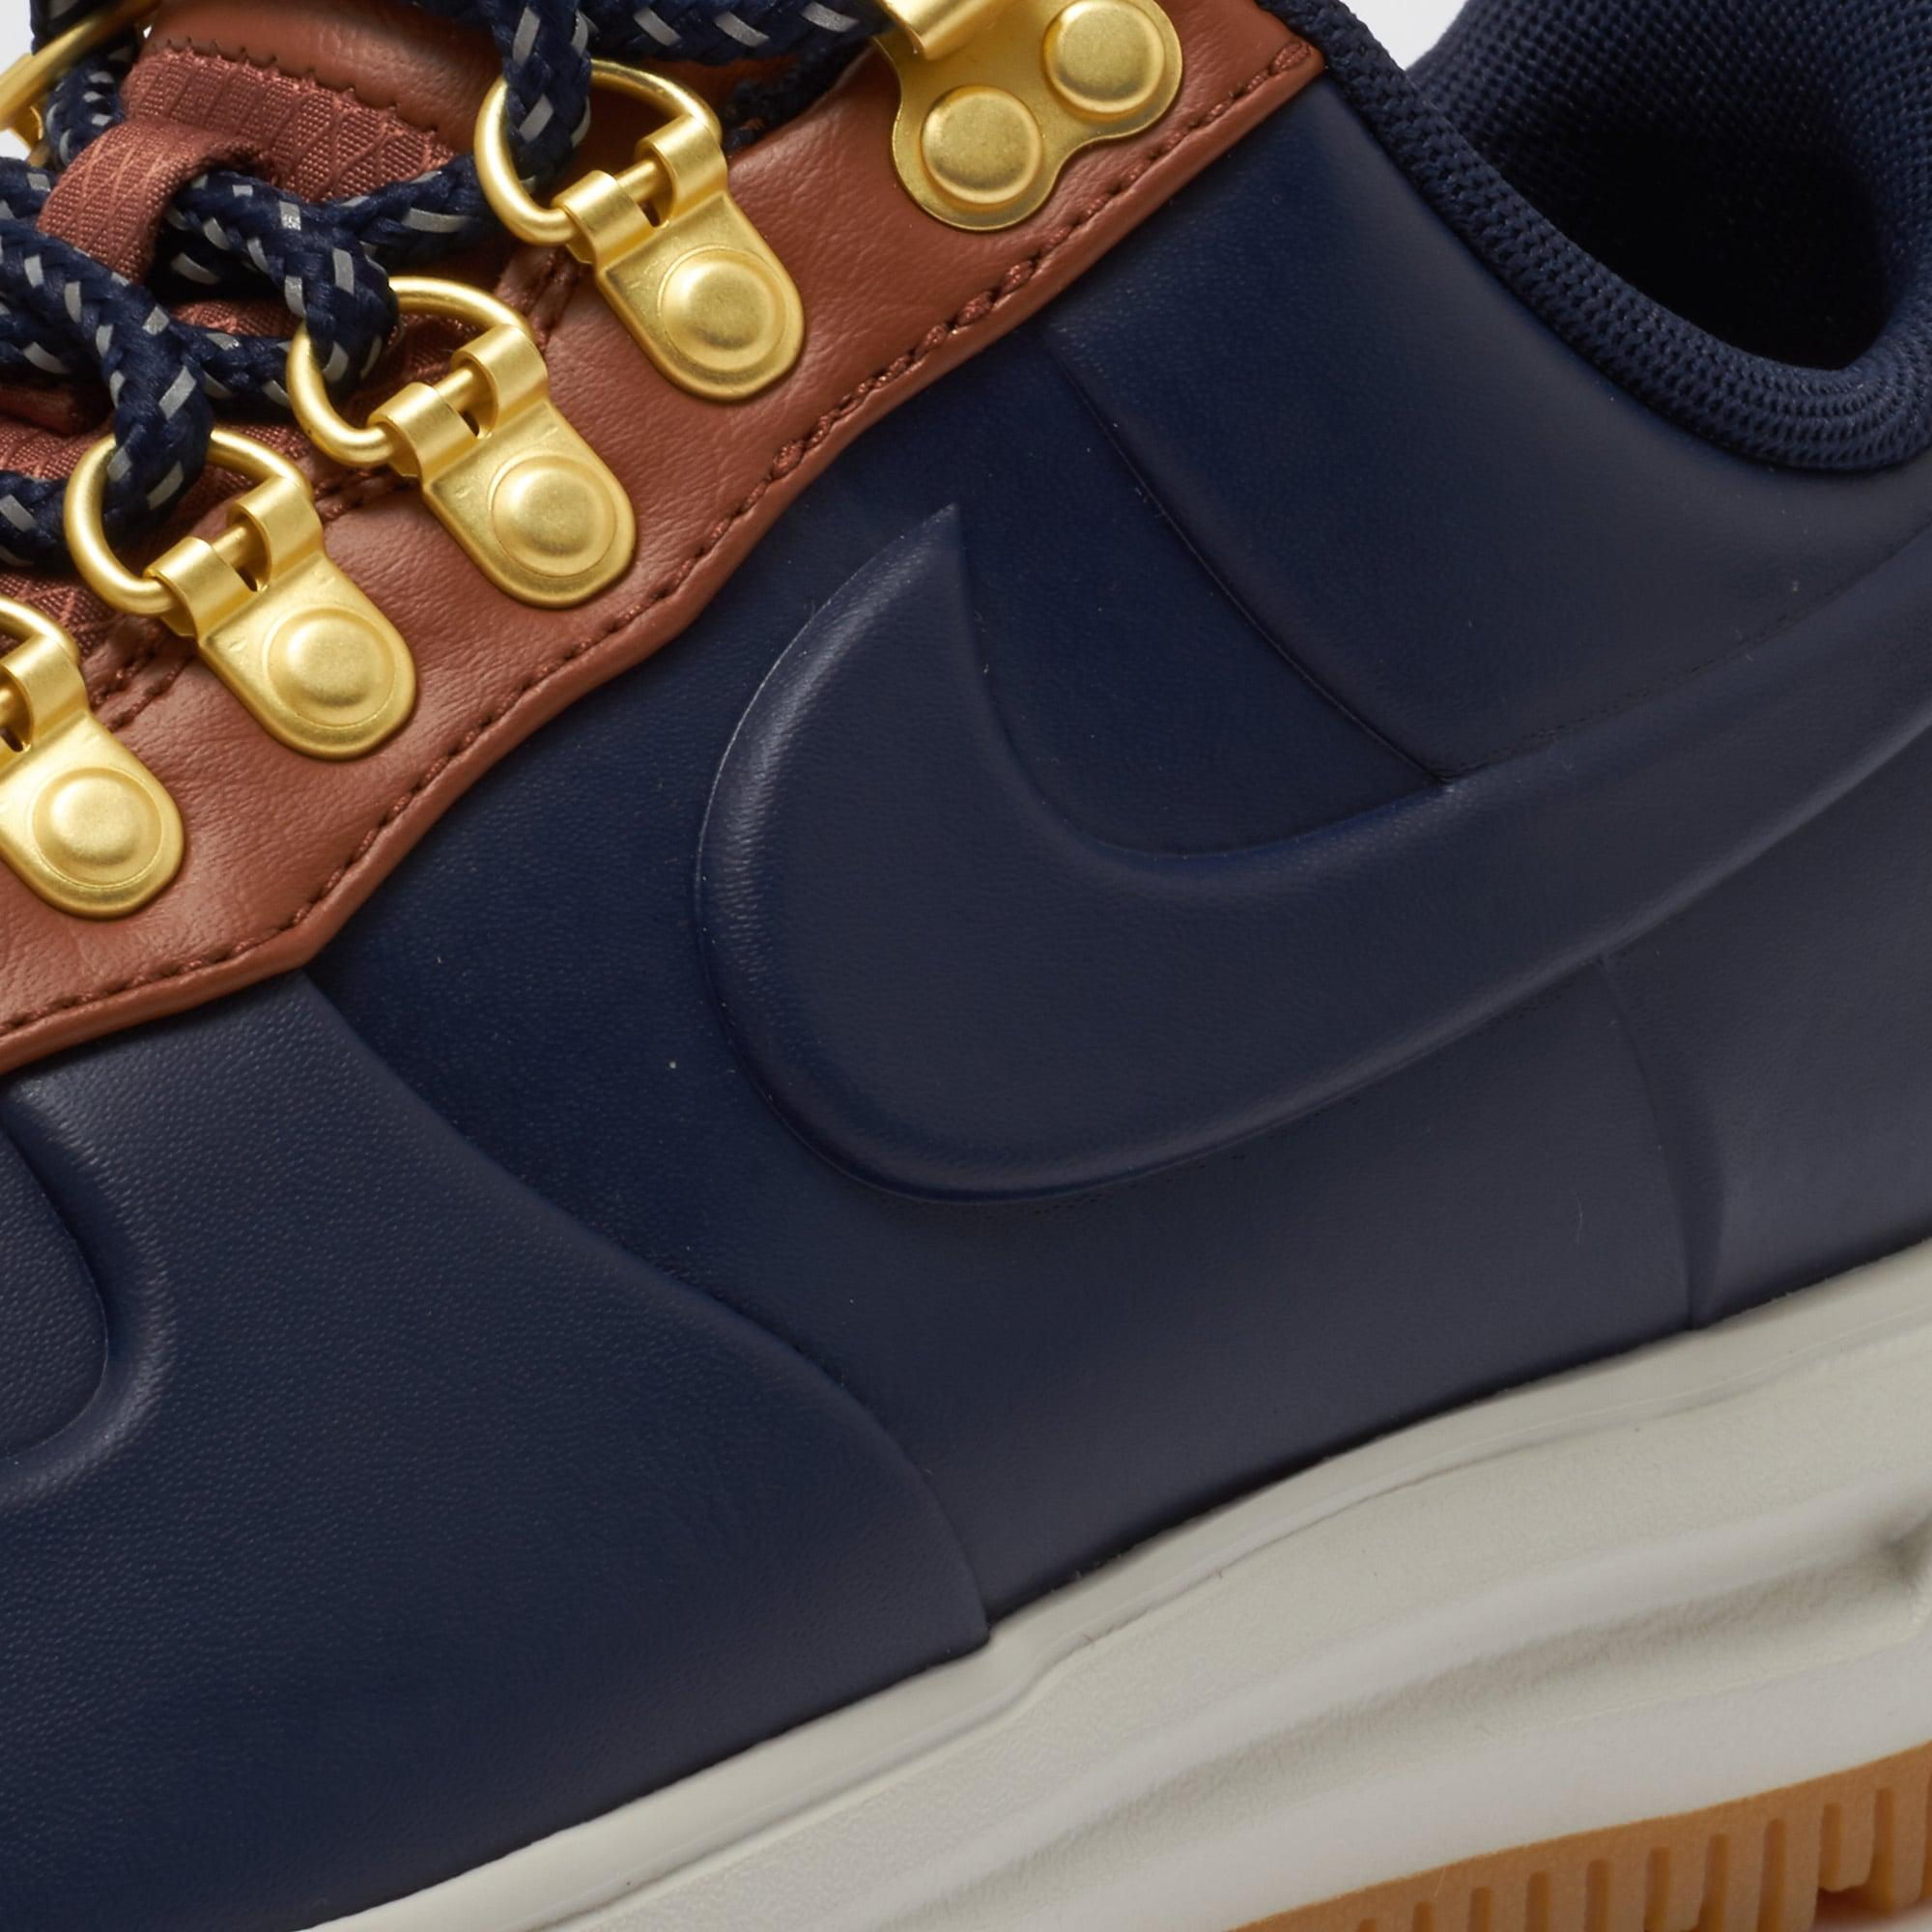 newest 7600c 92c64 Nike Lunar Force 1 Duckboot Low - Obsidian   Saddle Brown in Blue ...